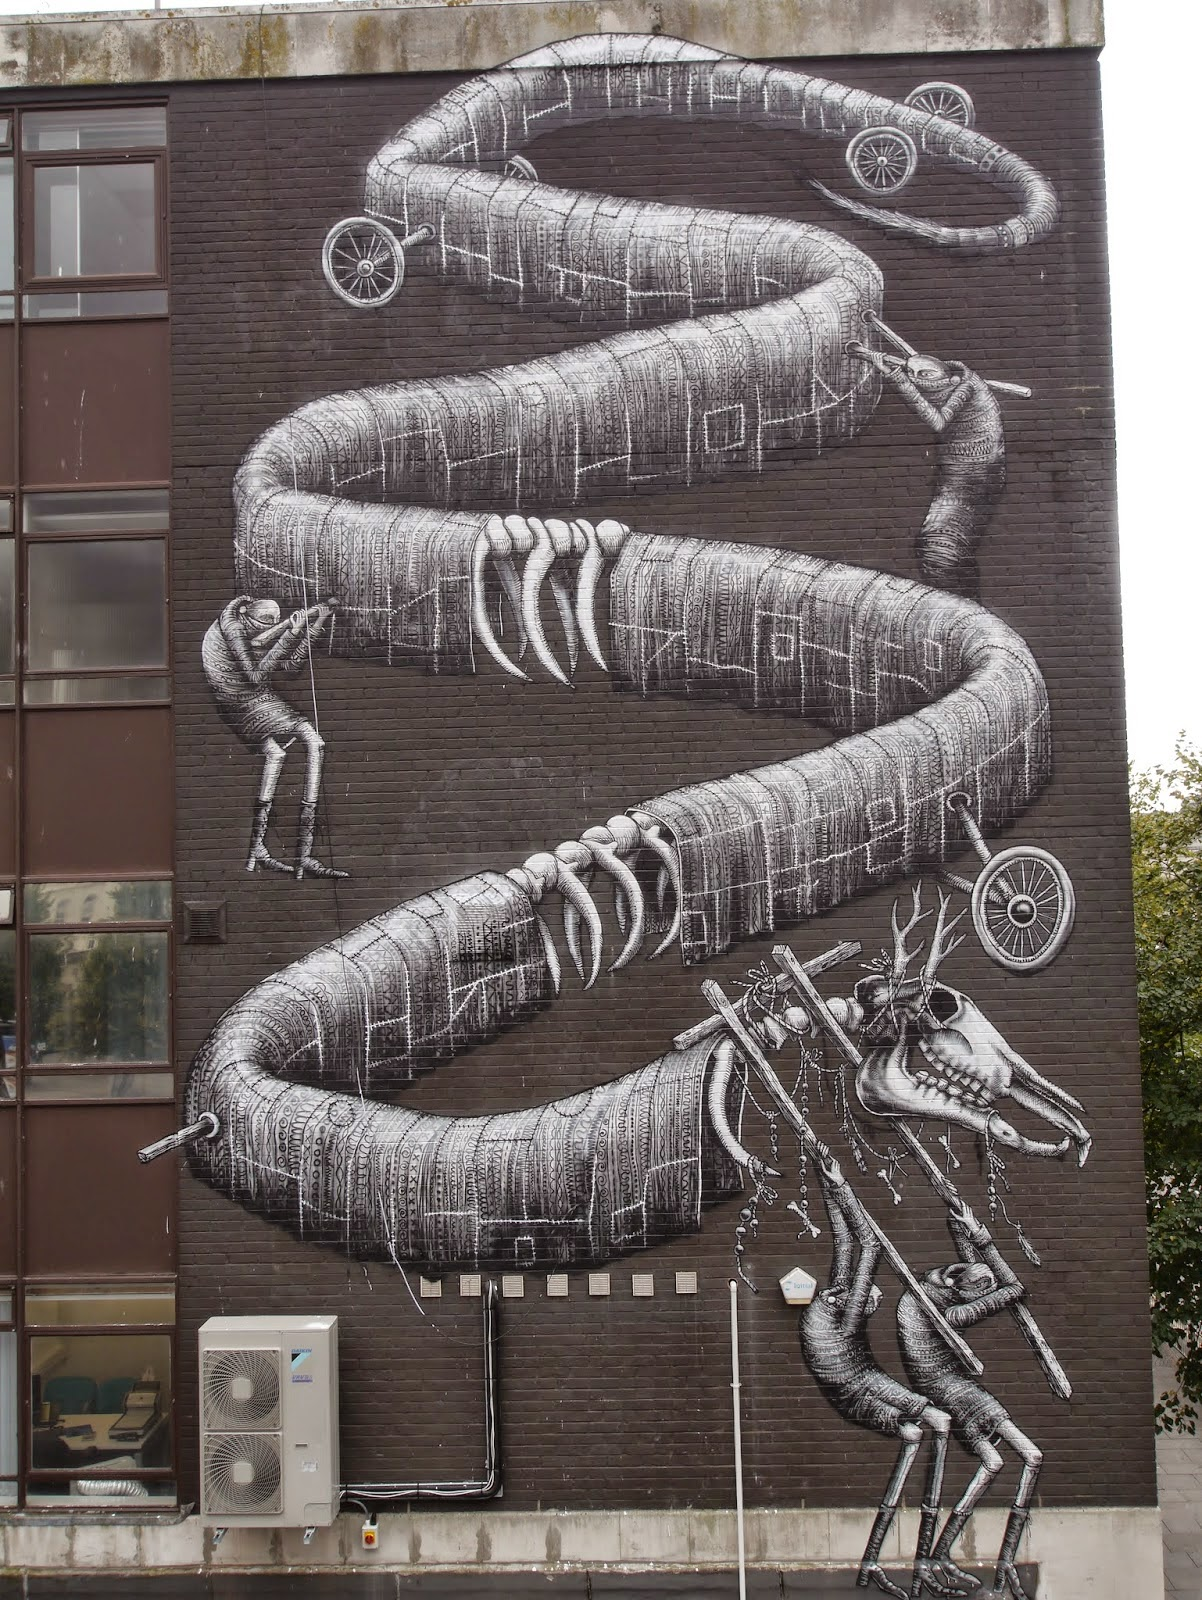 Phlegm paints a massive mural for Empty Walls Festival in Cardiff, Wales